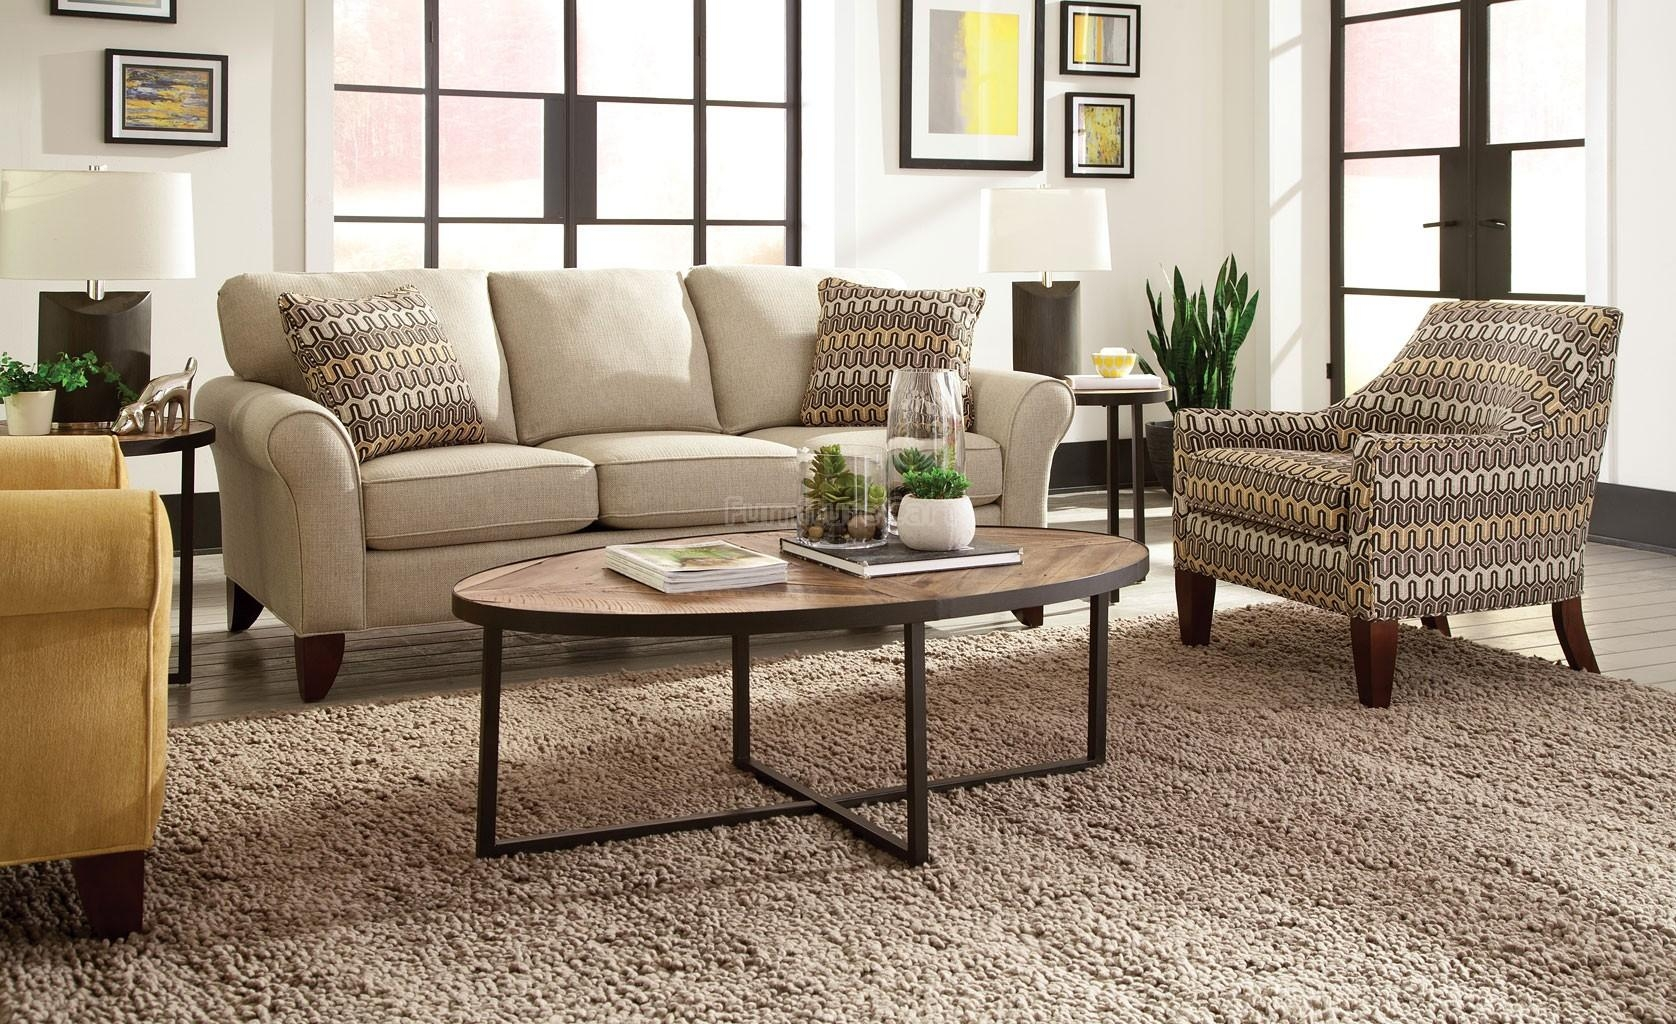 Furnitures: Fill Your Home With Luxury Craftmaster Furniture For Regarding Craftsman Sectional Sofa (Image 12 of 15)